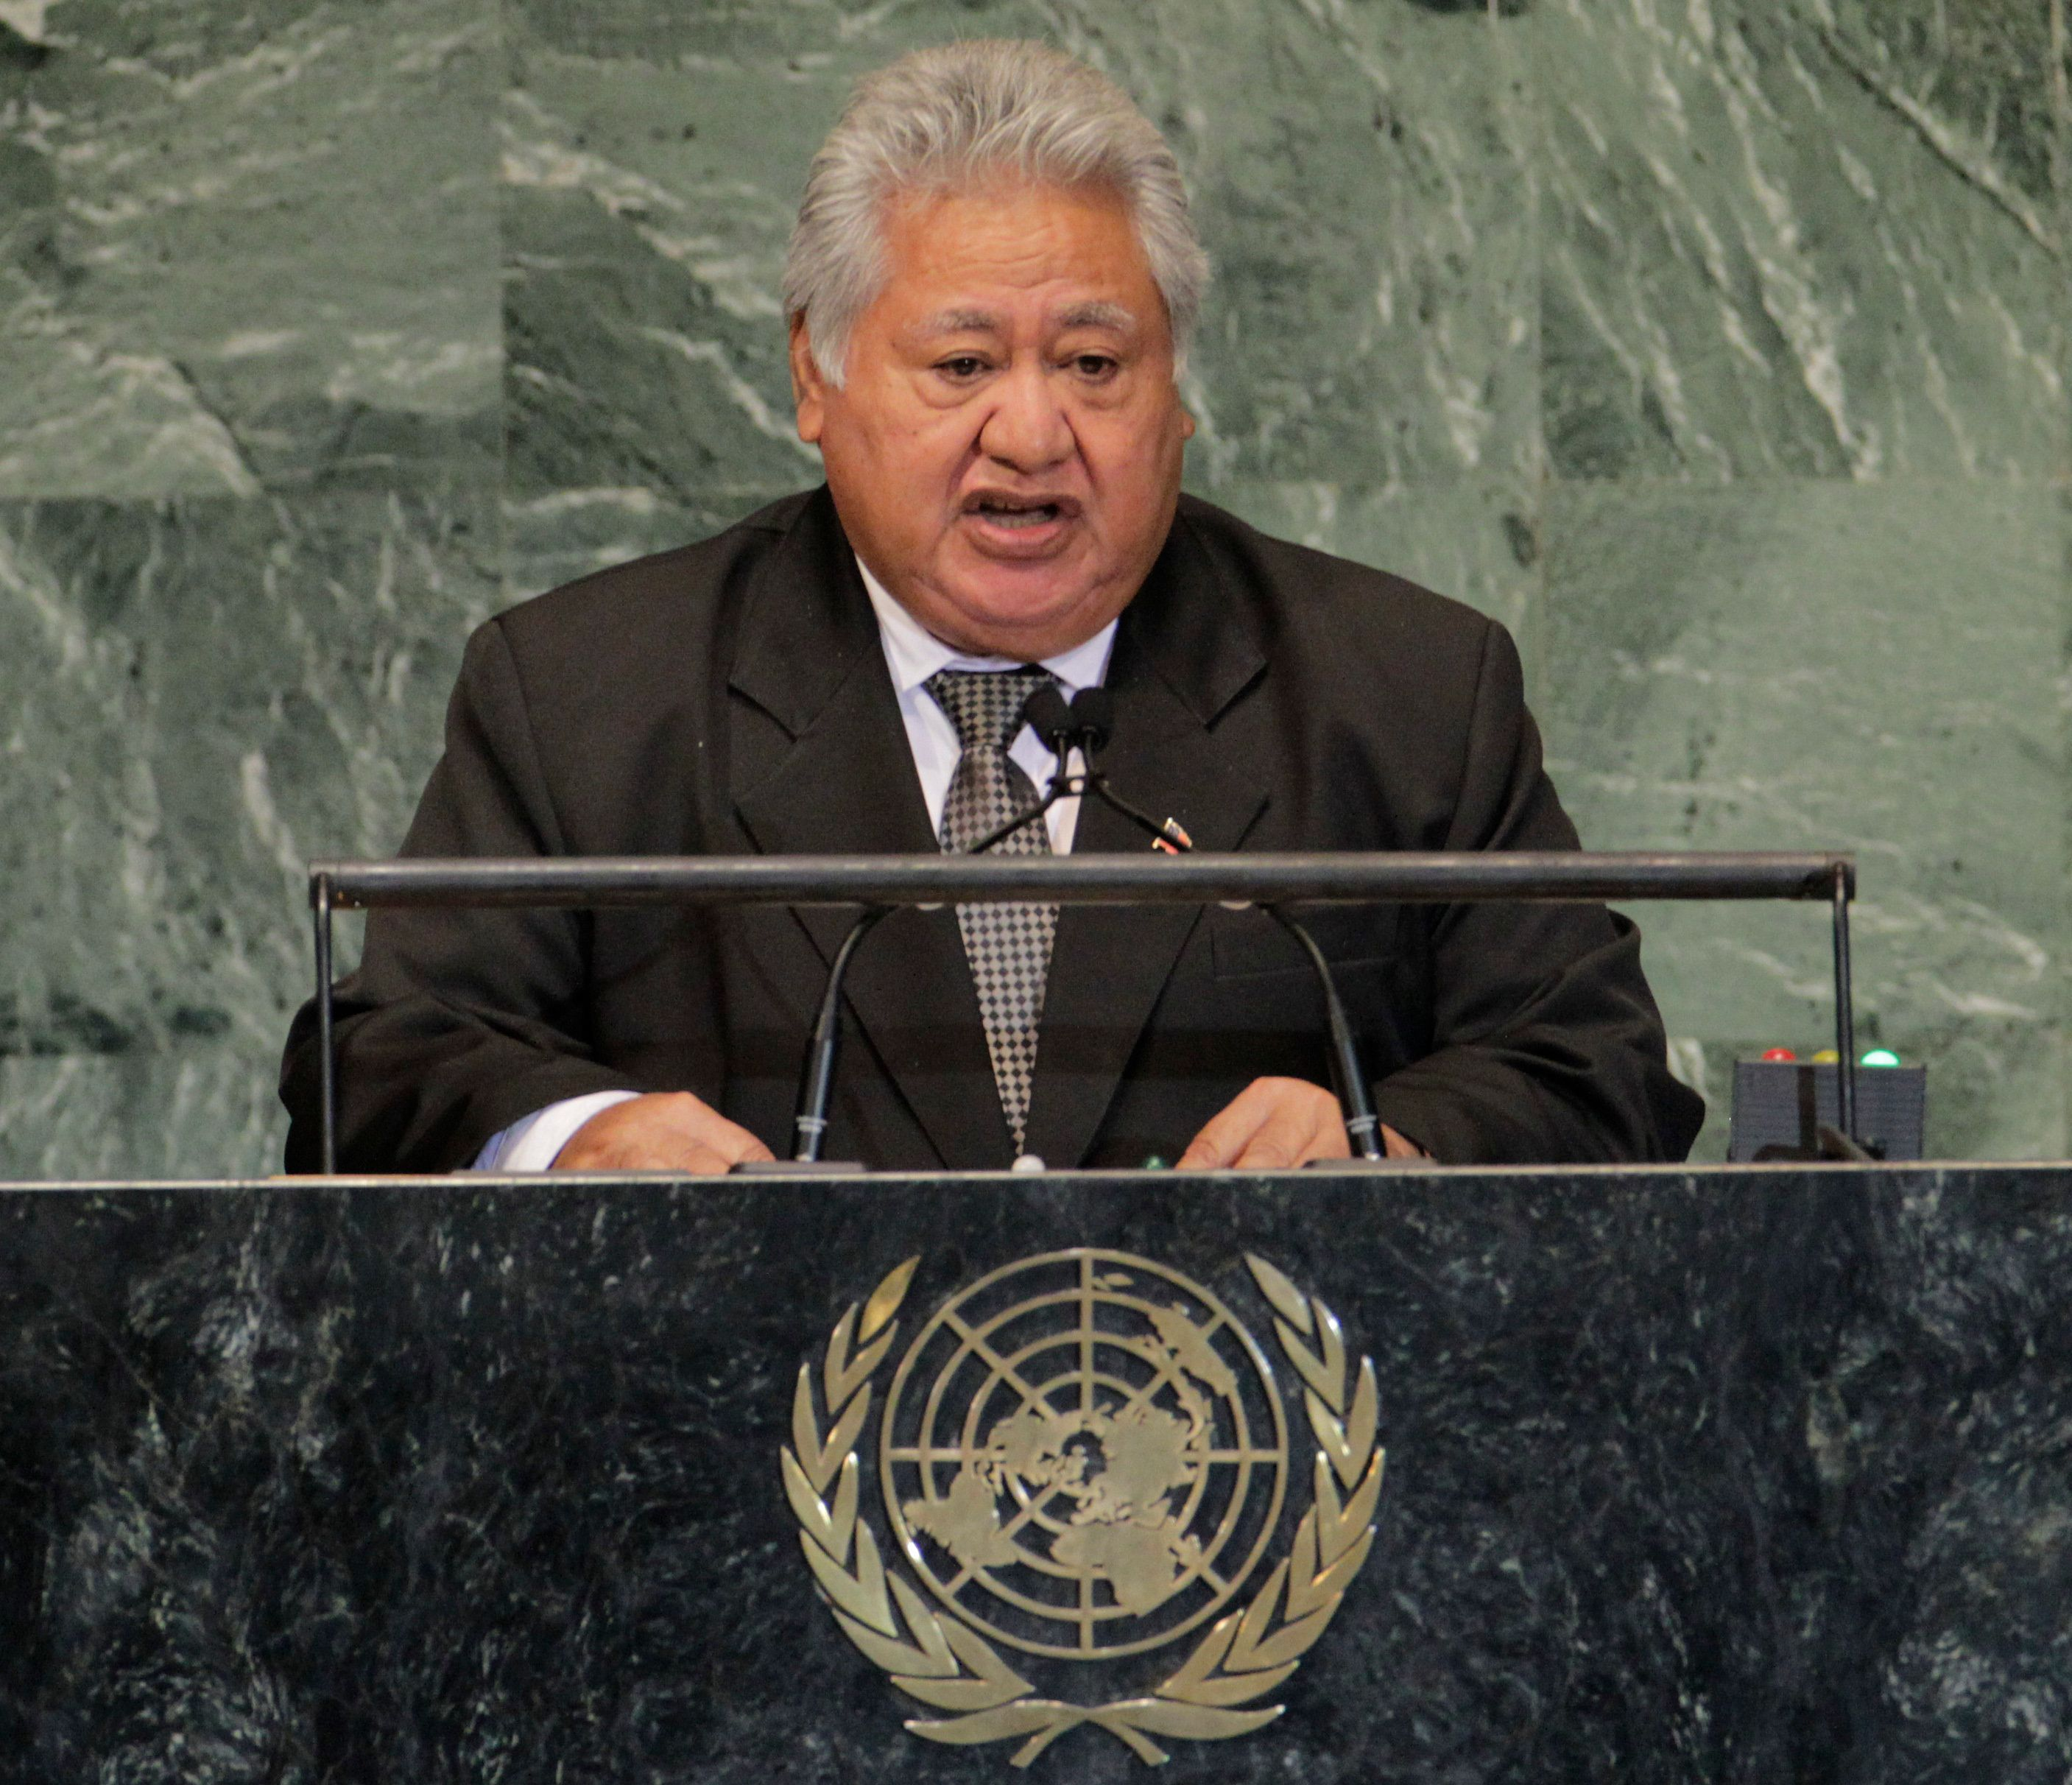 Samoan Prime Minister: Leaders Who Deny Climate Change Are 'Utterly